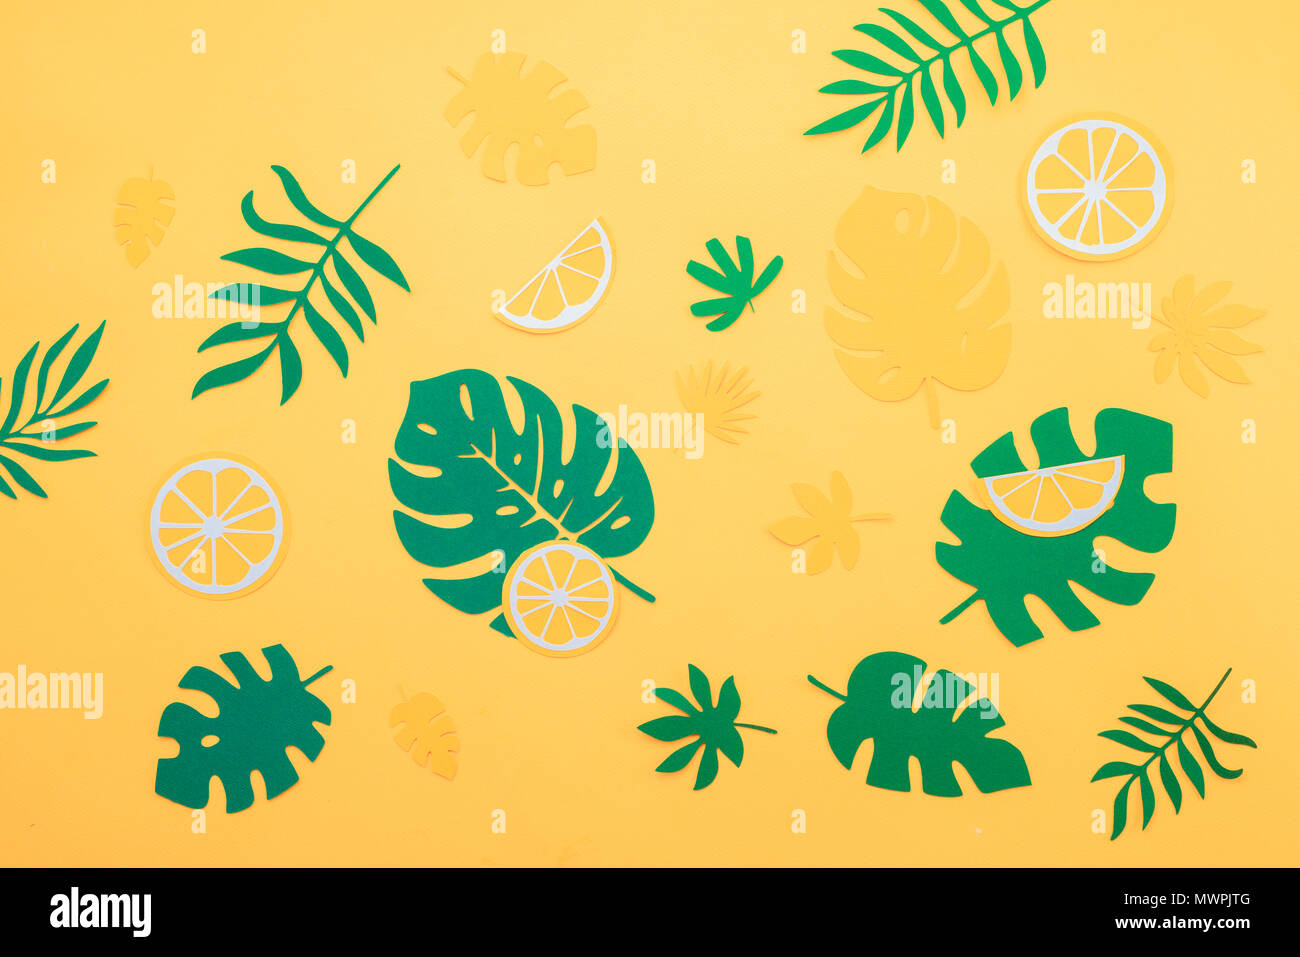 Tropical leaves pattern. Green monstera and fern leaves with orange and lemon slices on a bright yellow background. Summer vacation concept with paper craft fruits - Stock Image